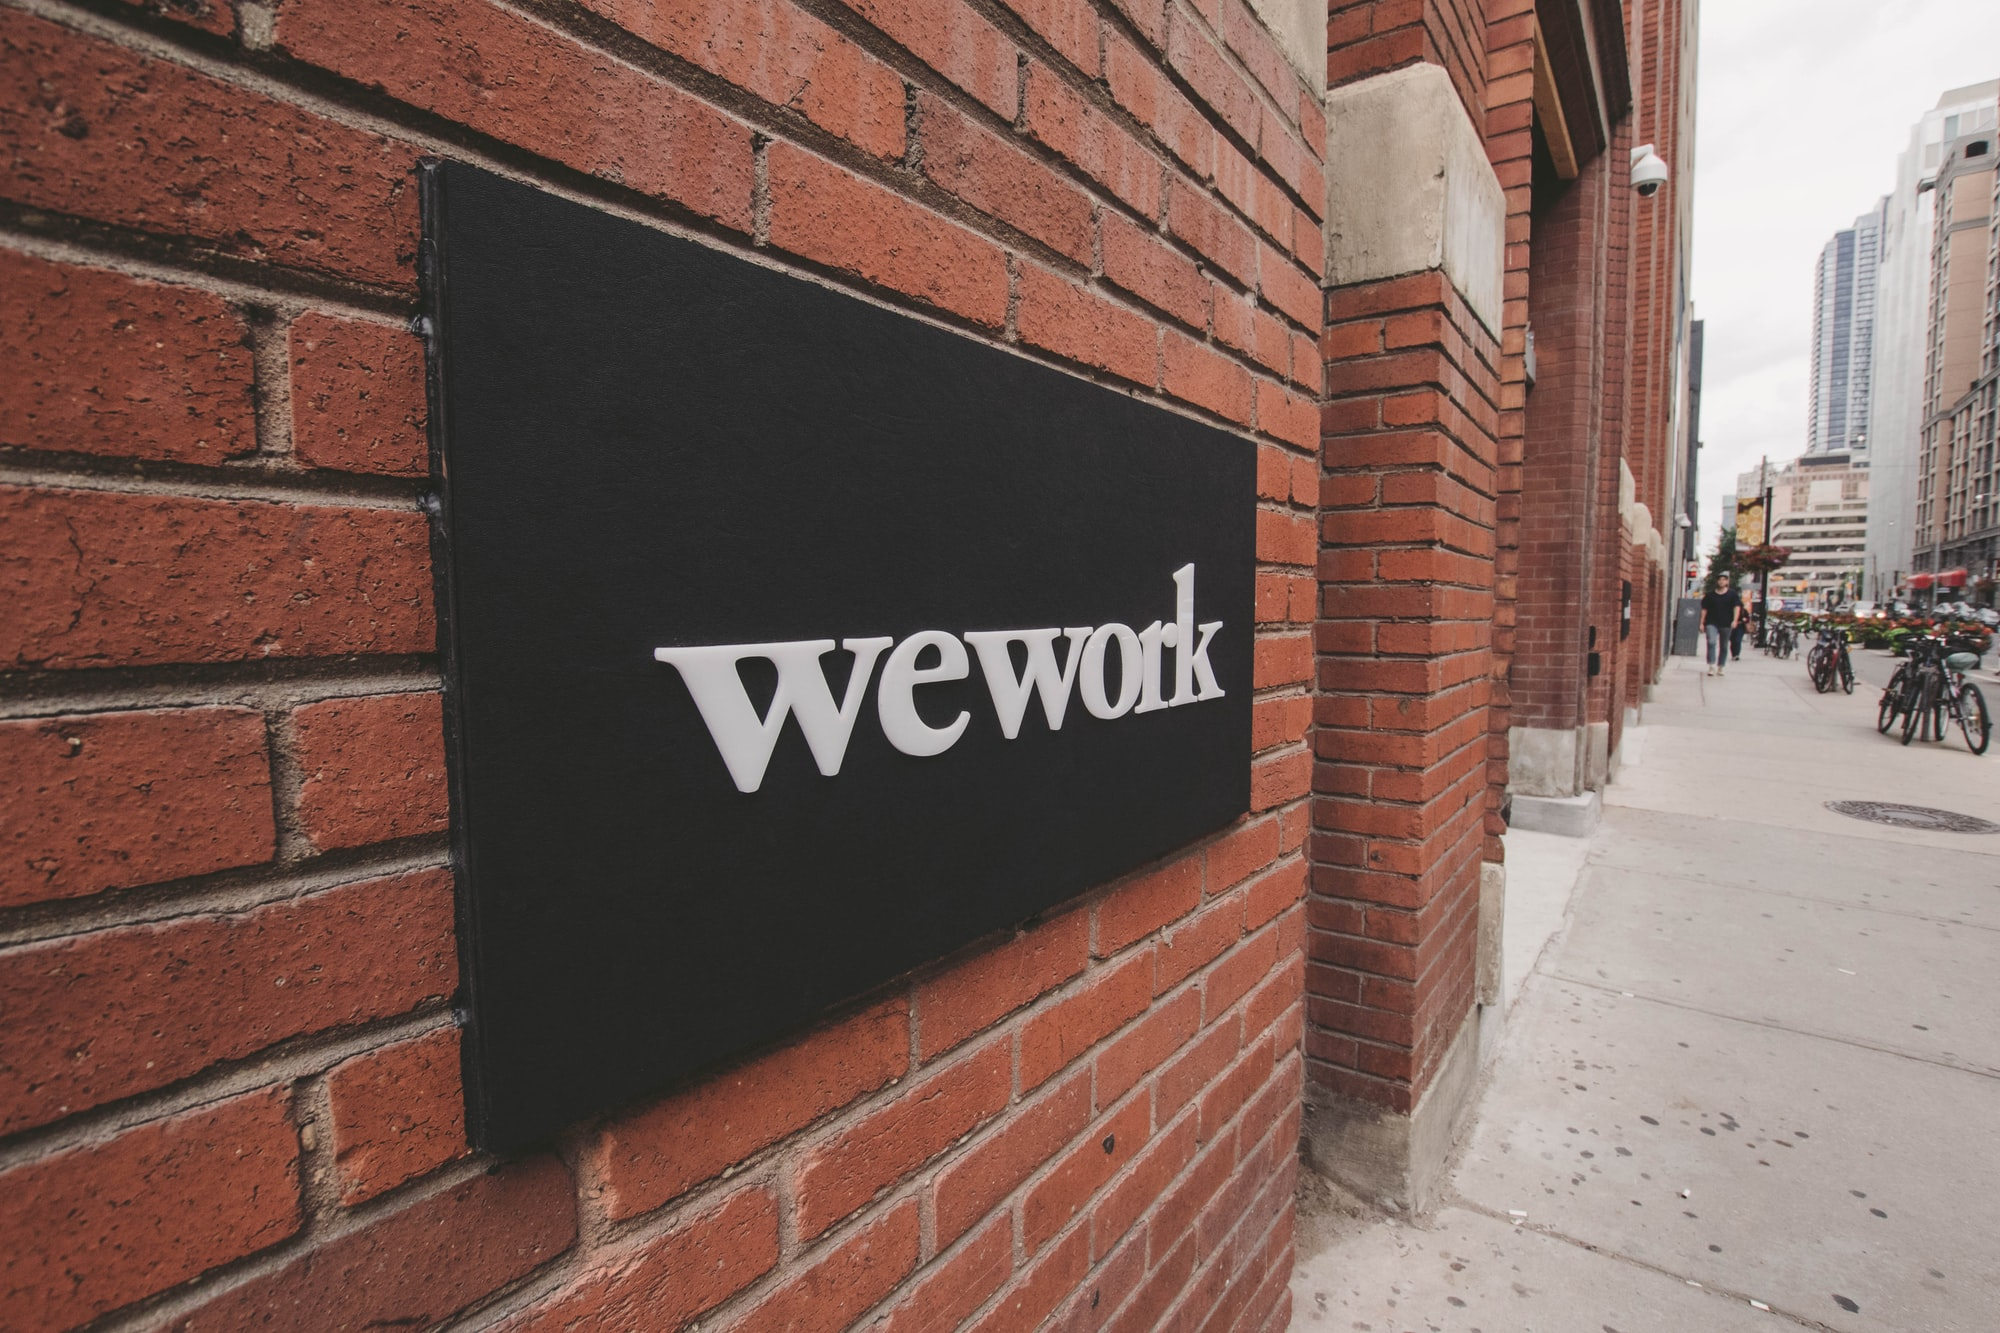 Google Play Pass and WeWork Soap Opera